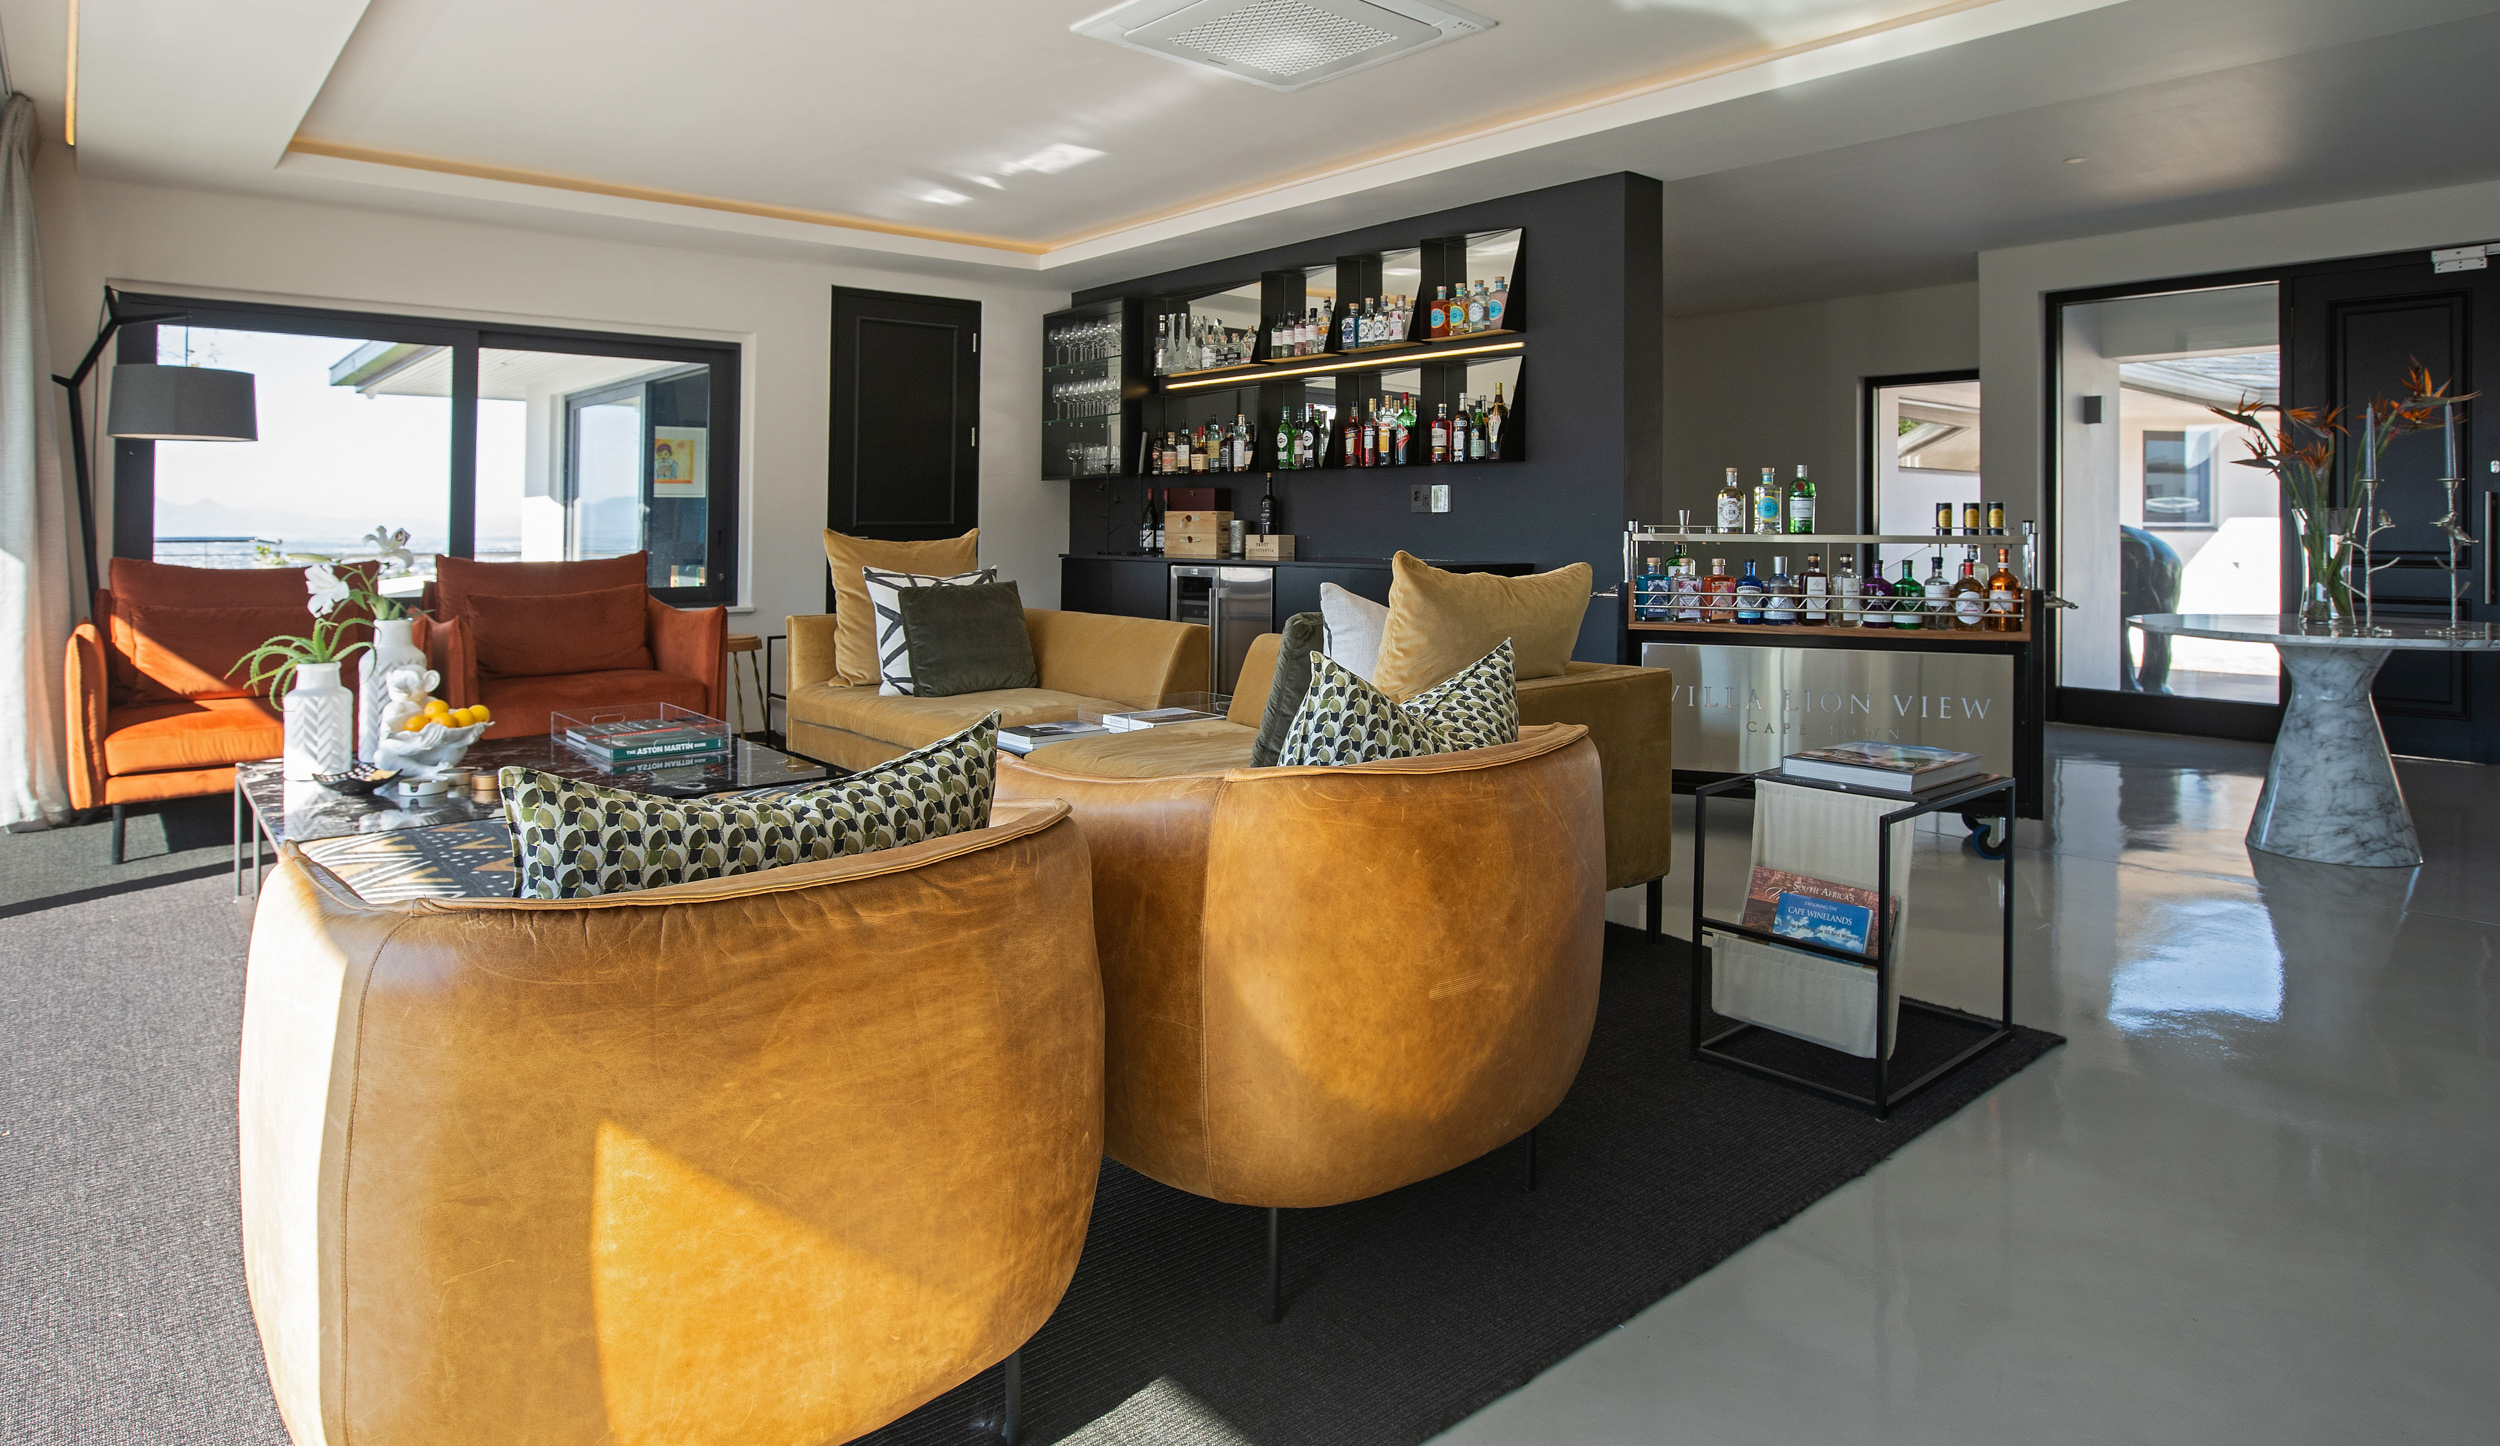 Lounge with couches and chairs with a fully stocked bar at Villa Lion View